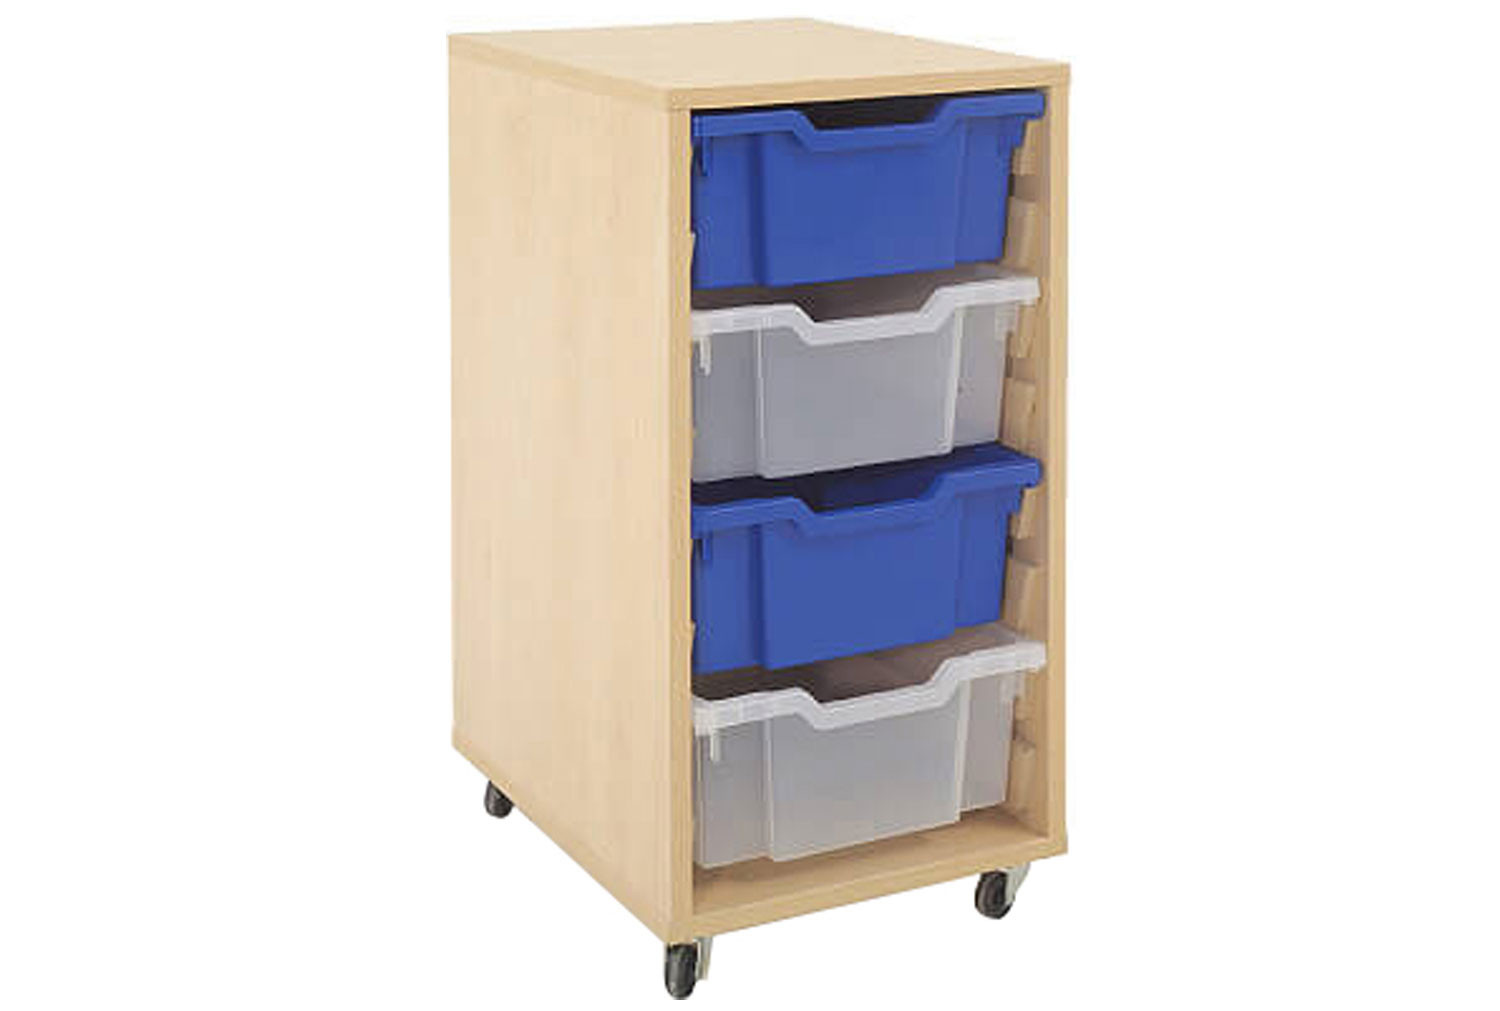 Mobile tray storage unit with 4 deep Gratnells trays